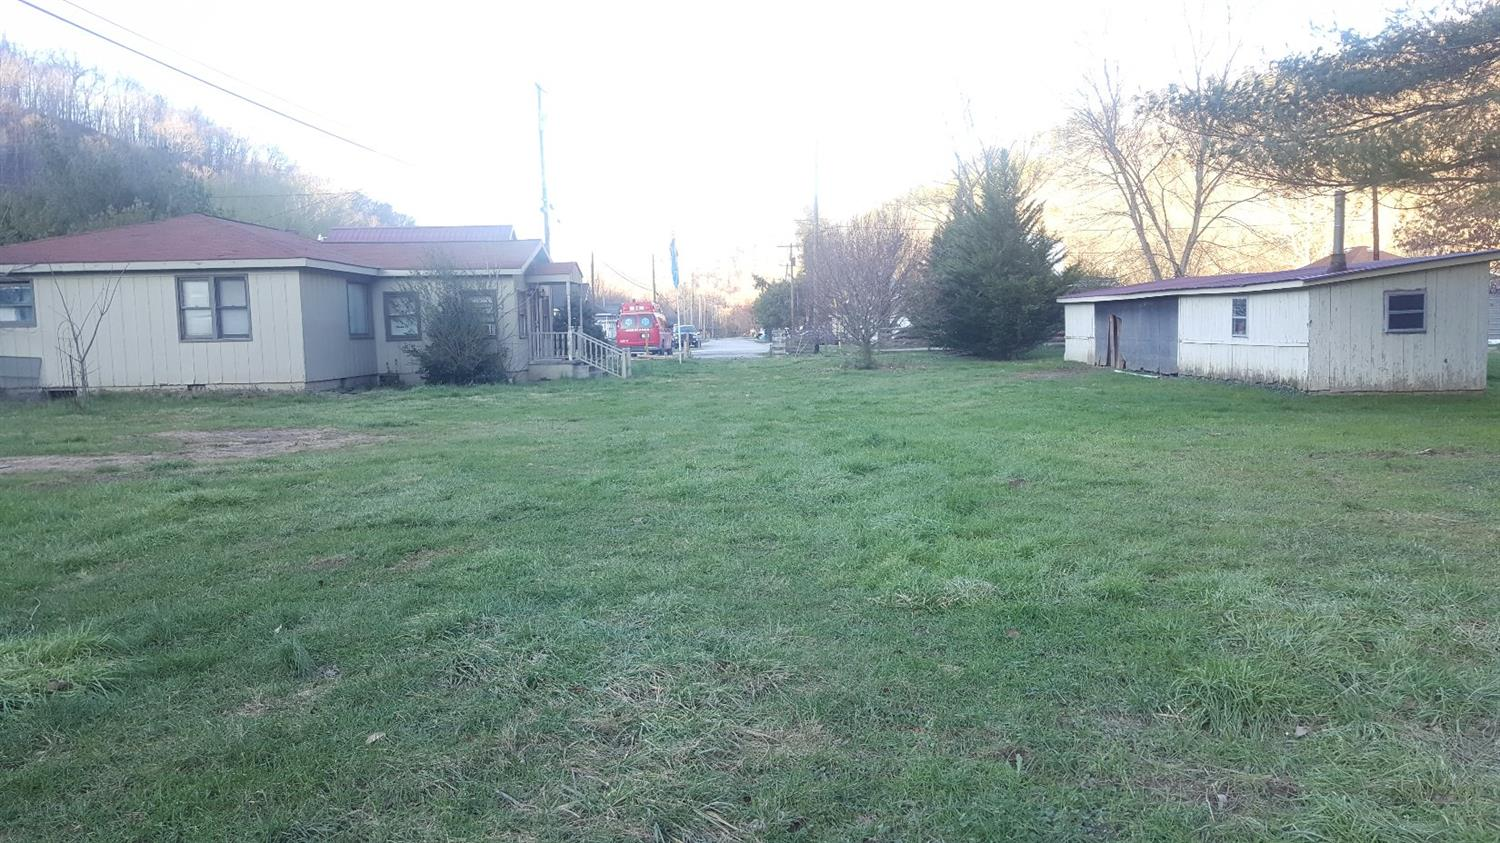 151 ANDERSON ST, HARLAN, KY 40831  Photo 45